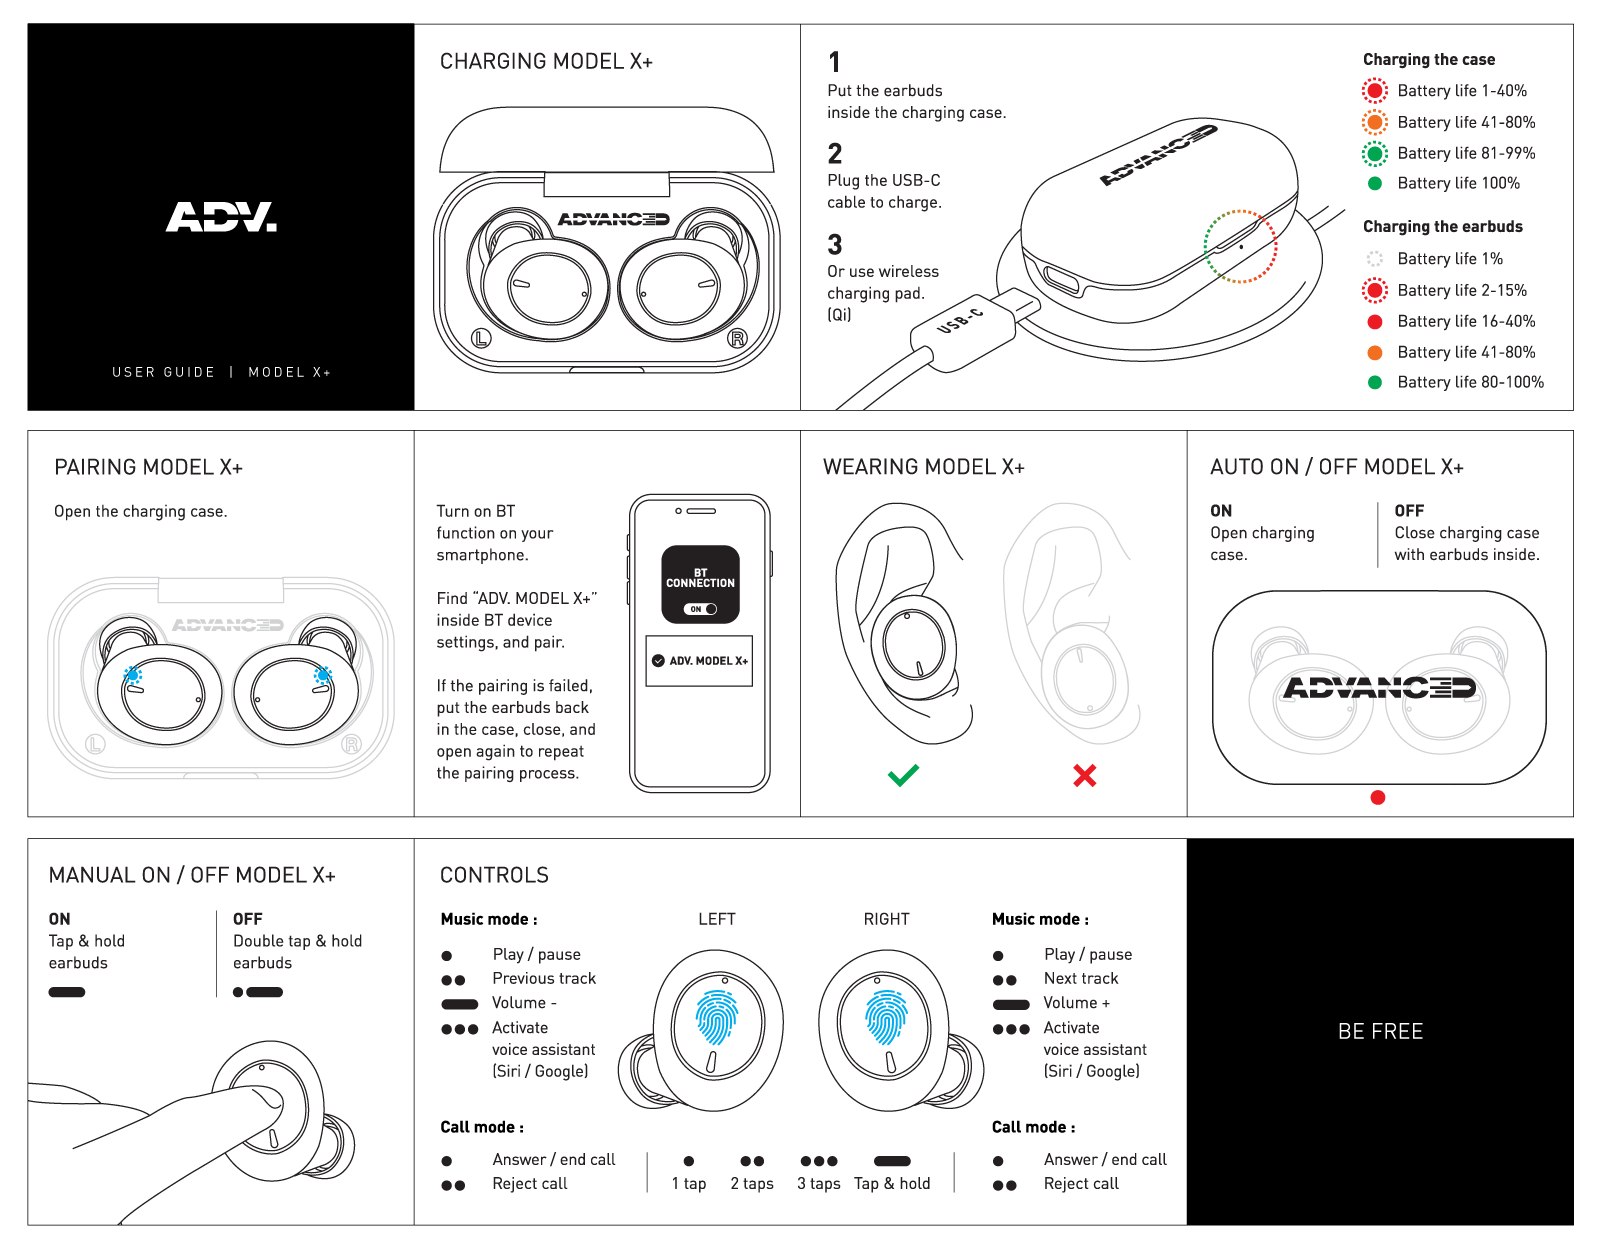 ADV. Sound Model X+ User Guide